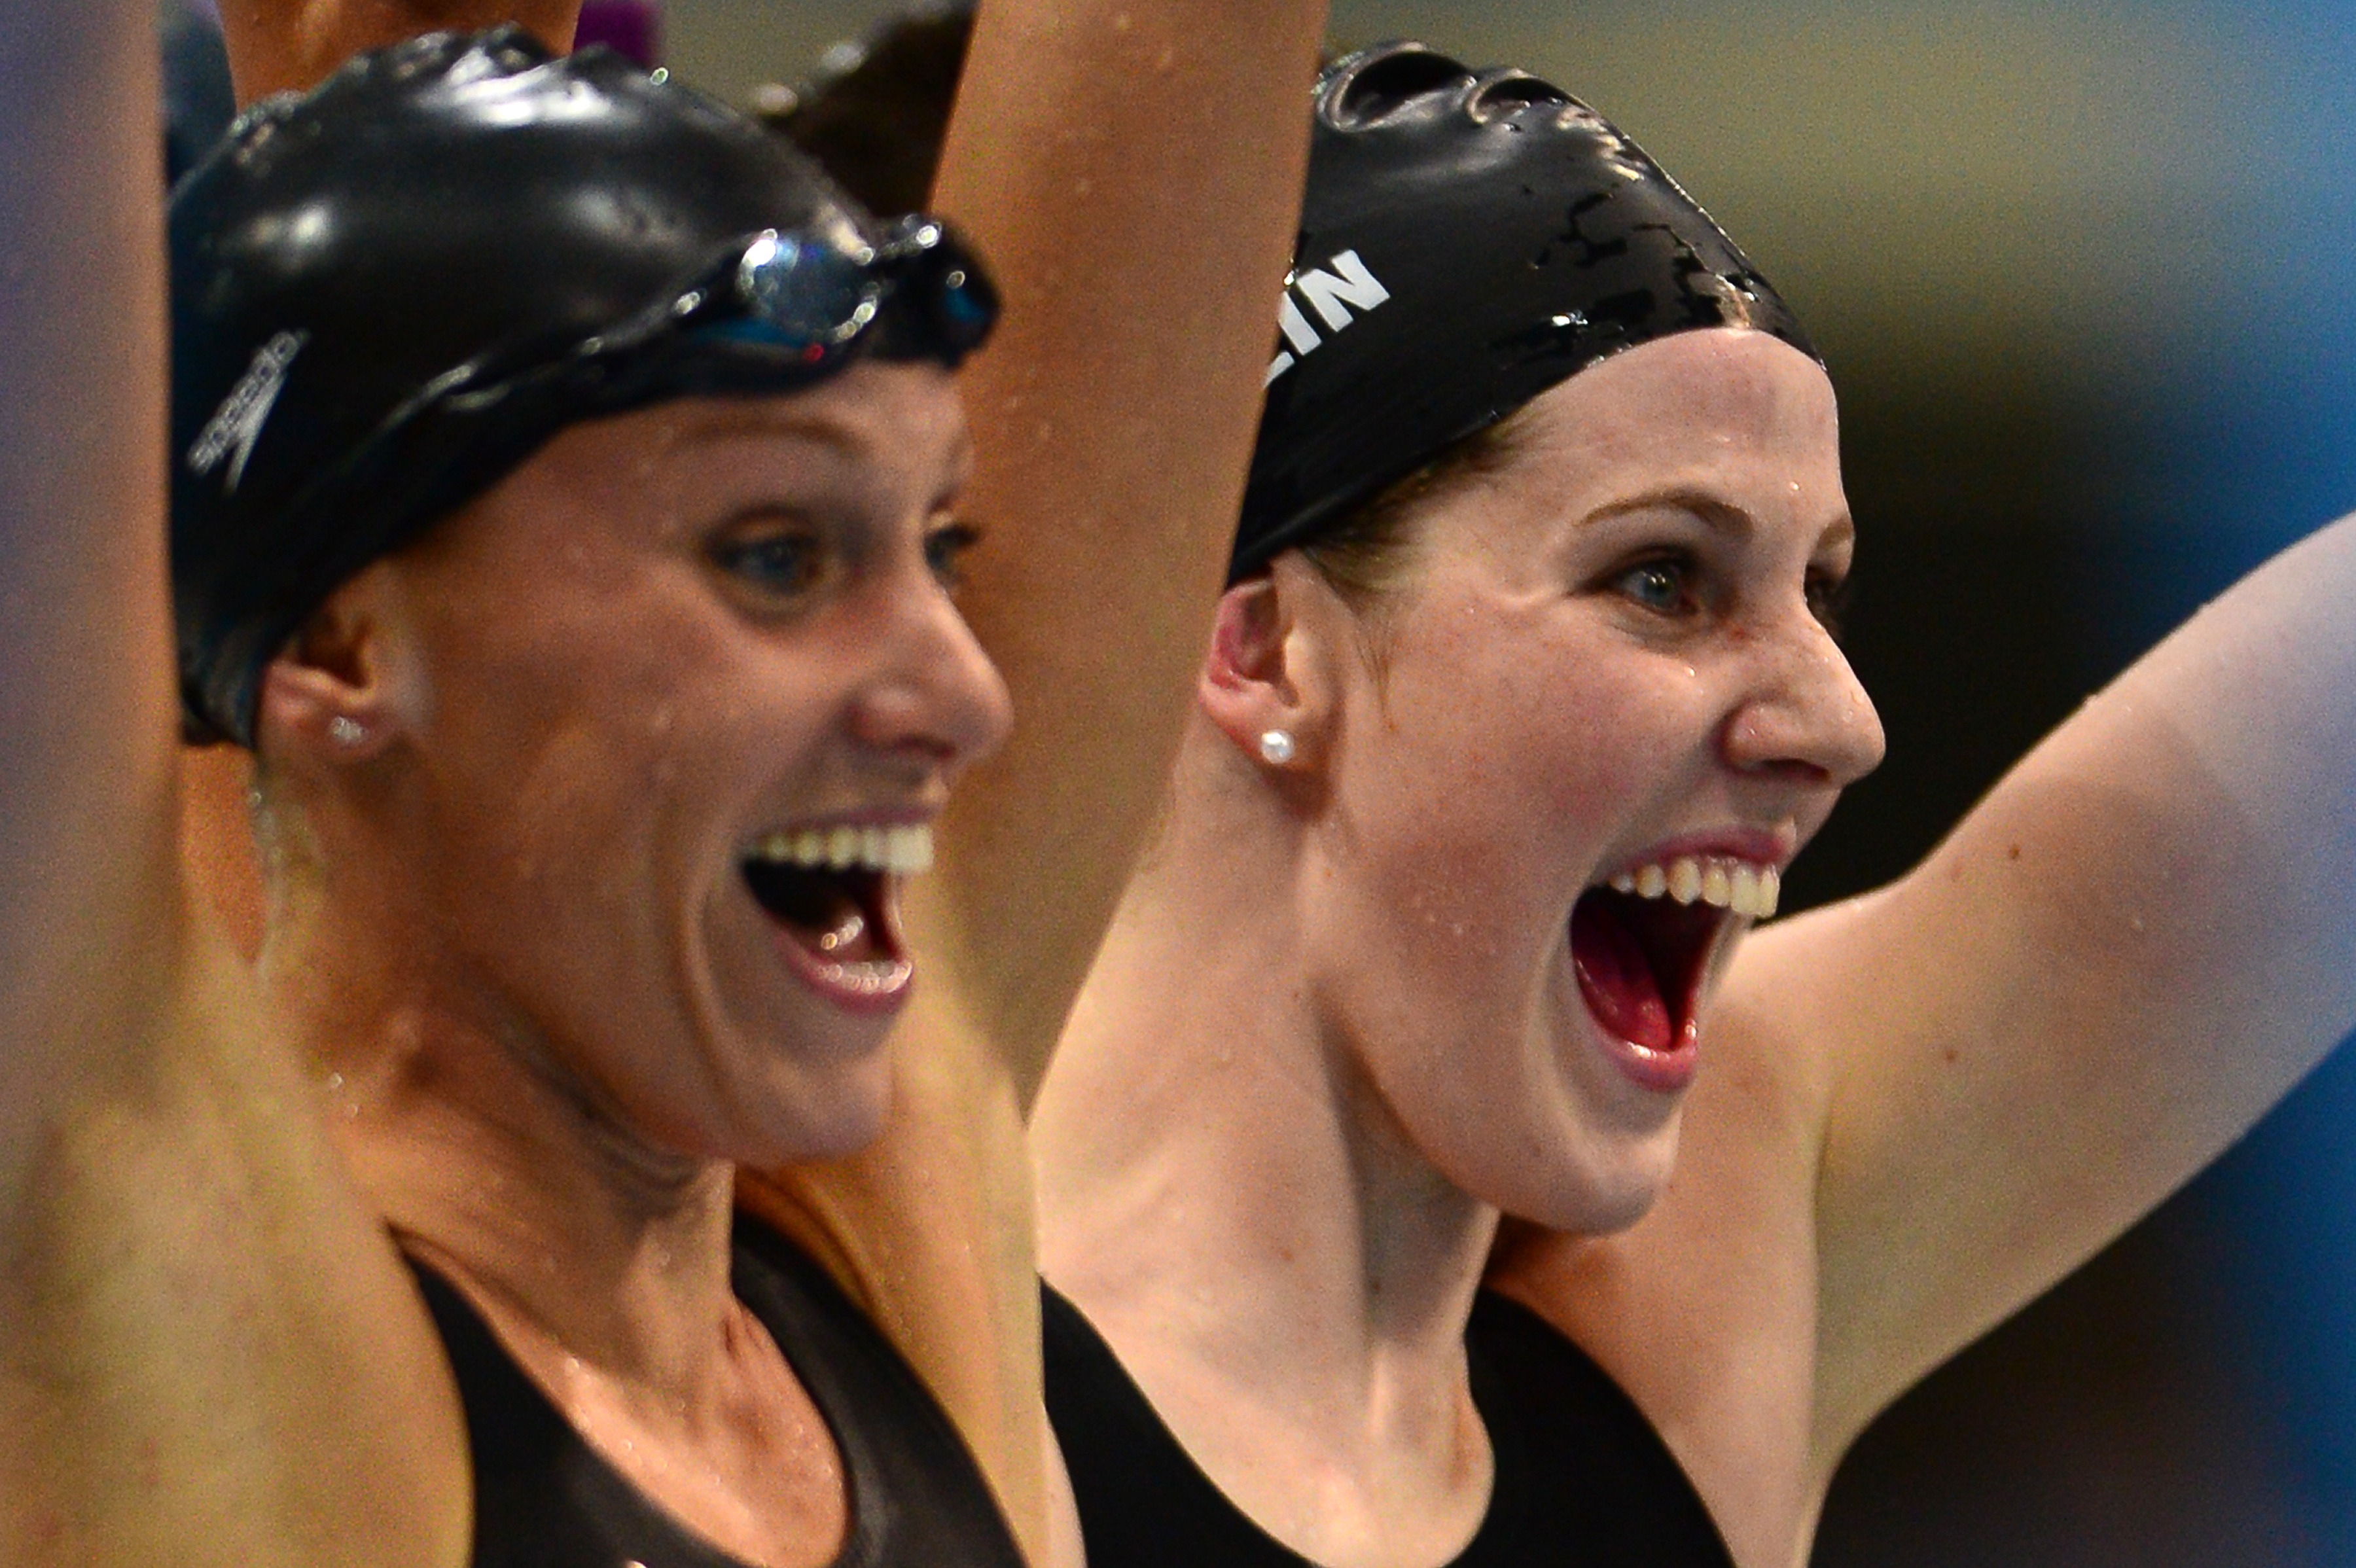 US swimmer Missy Franklin (R) and Dana Vollmer react after they competed in the women's 4x100m medley relay final during the swimming event at the London 2012 Olympic Games on August 4, 2012 in London. They won gold. (credit: MARTIN BUREAU/AFP/GettyImages)